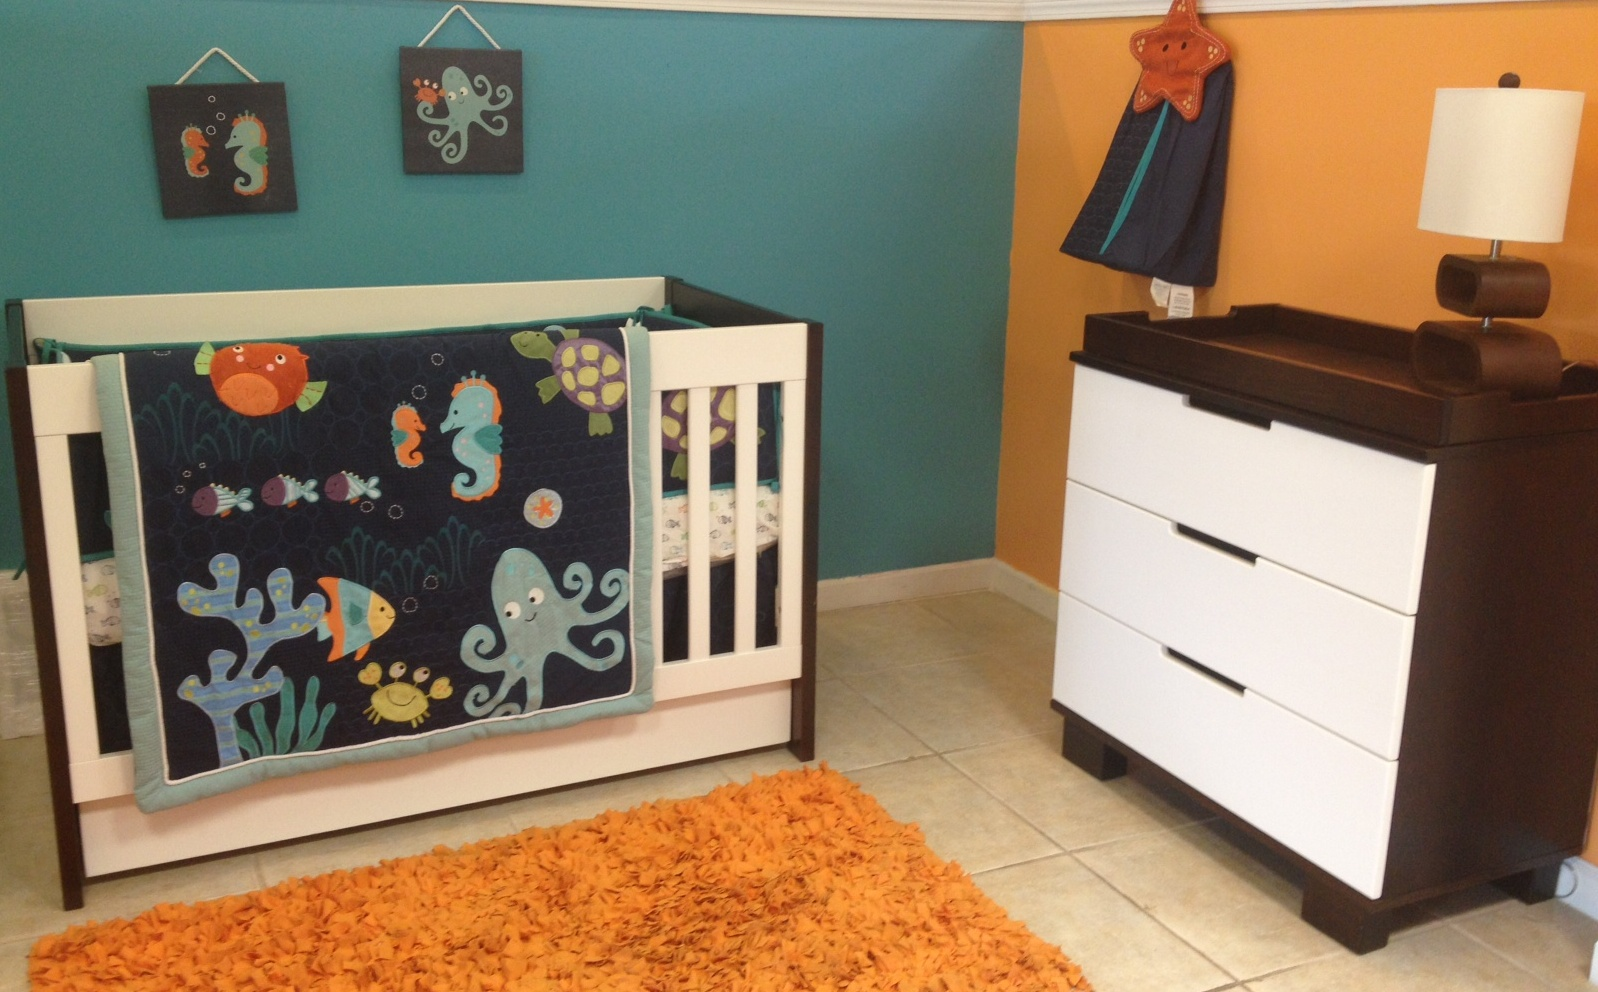 White Crib By Babyletto On Wheat Ceramics Floor Plus Orange Carpet Matched With Blue And Orange Wall Plus Wooden Cabinet For Nursery Decor Ideas